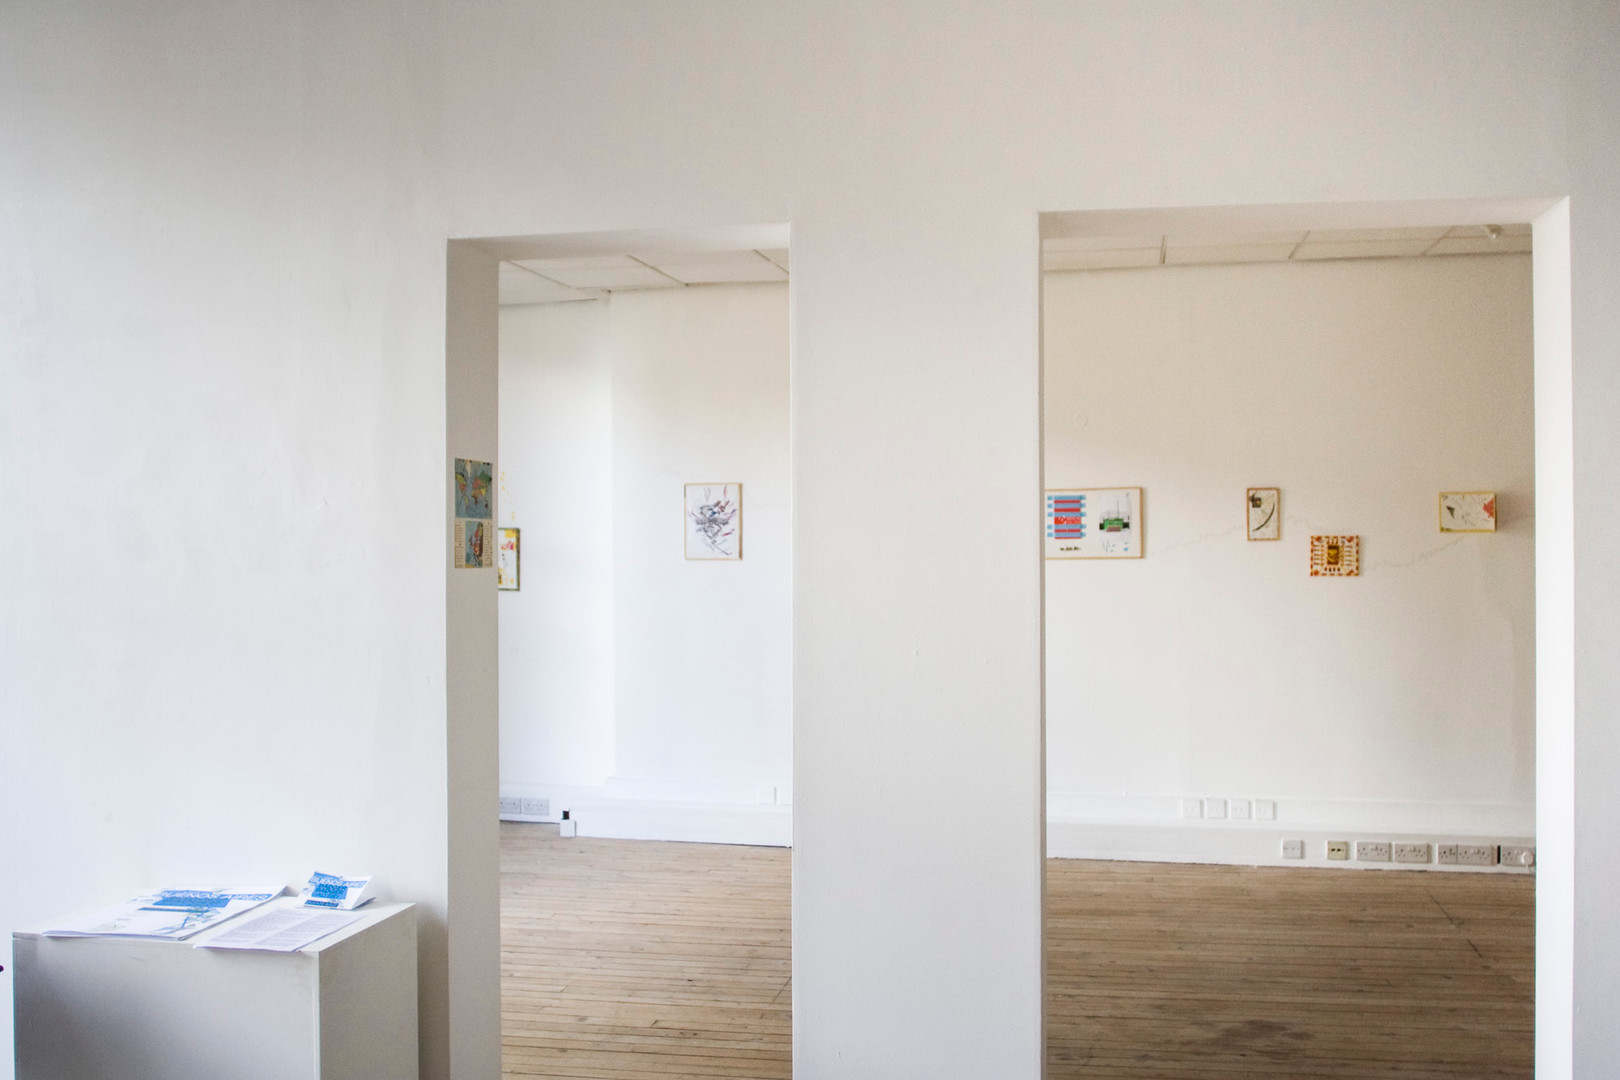 Exhibition view at Badger Badger Projects.